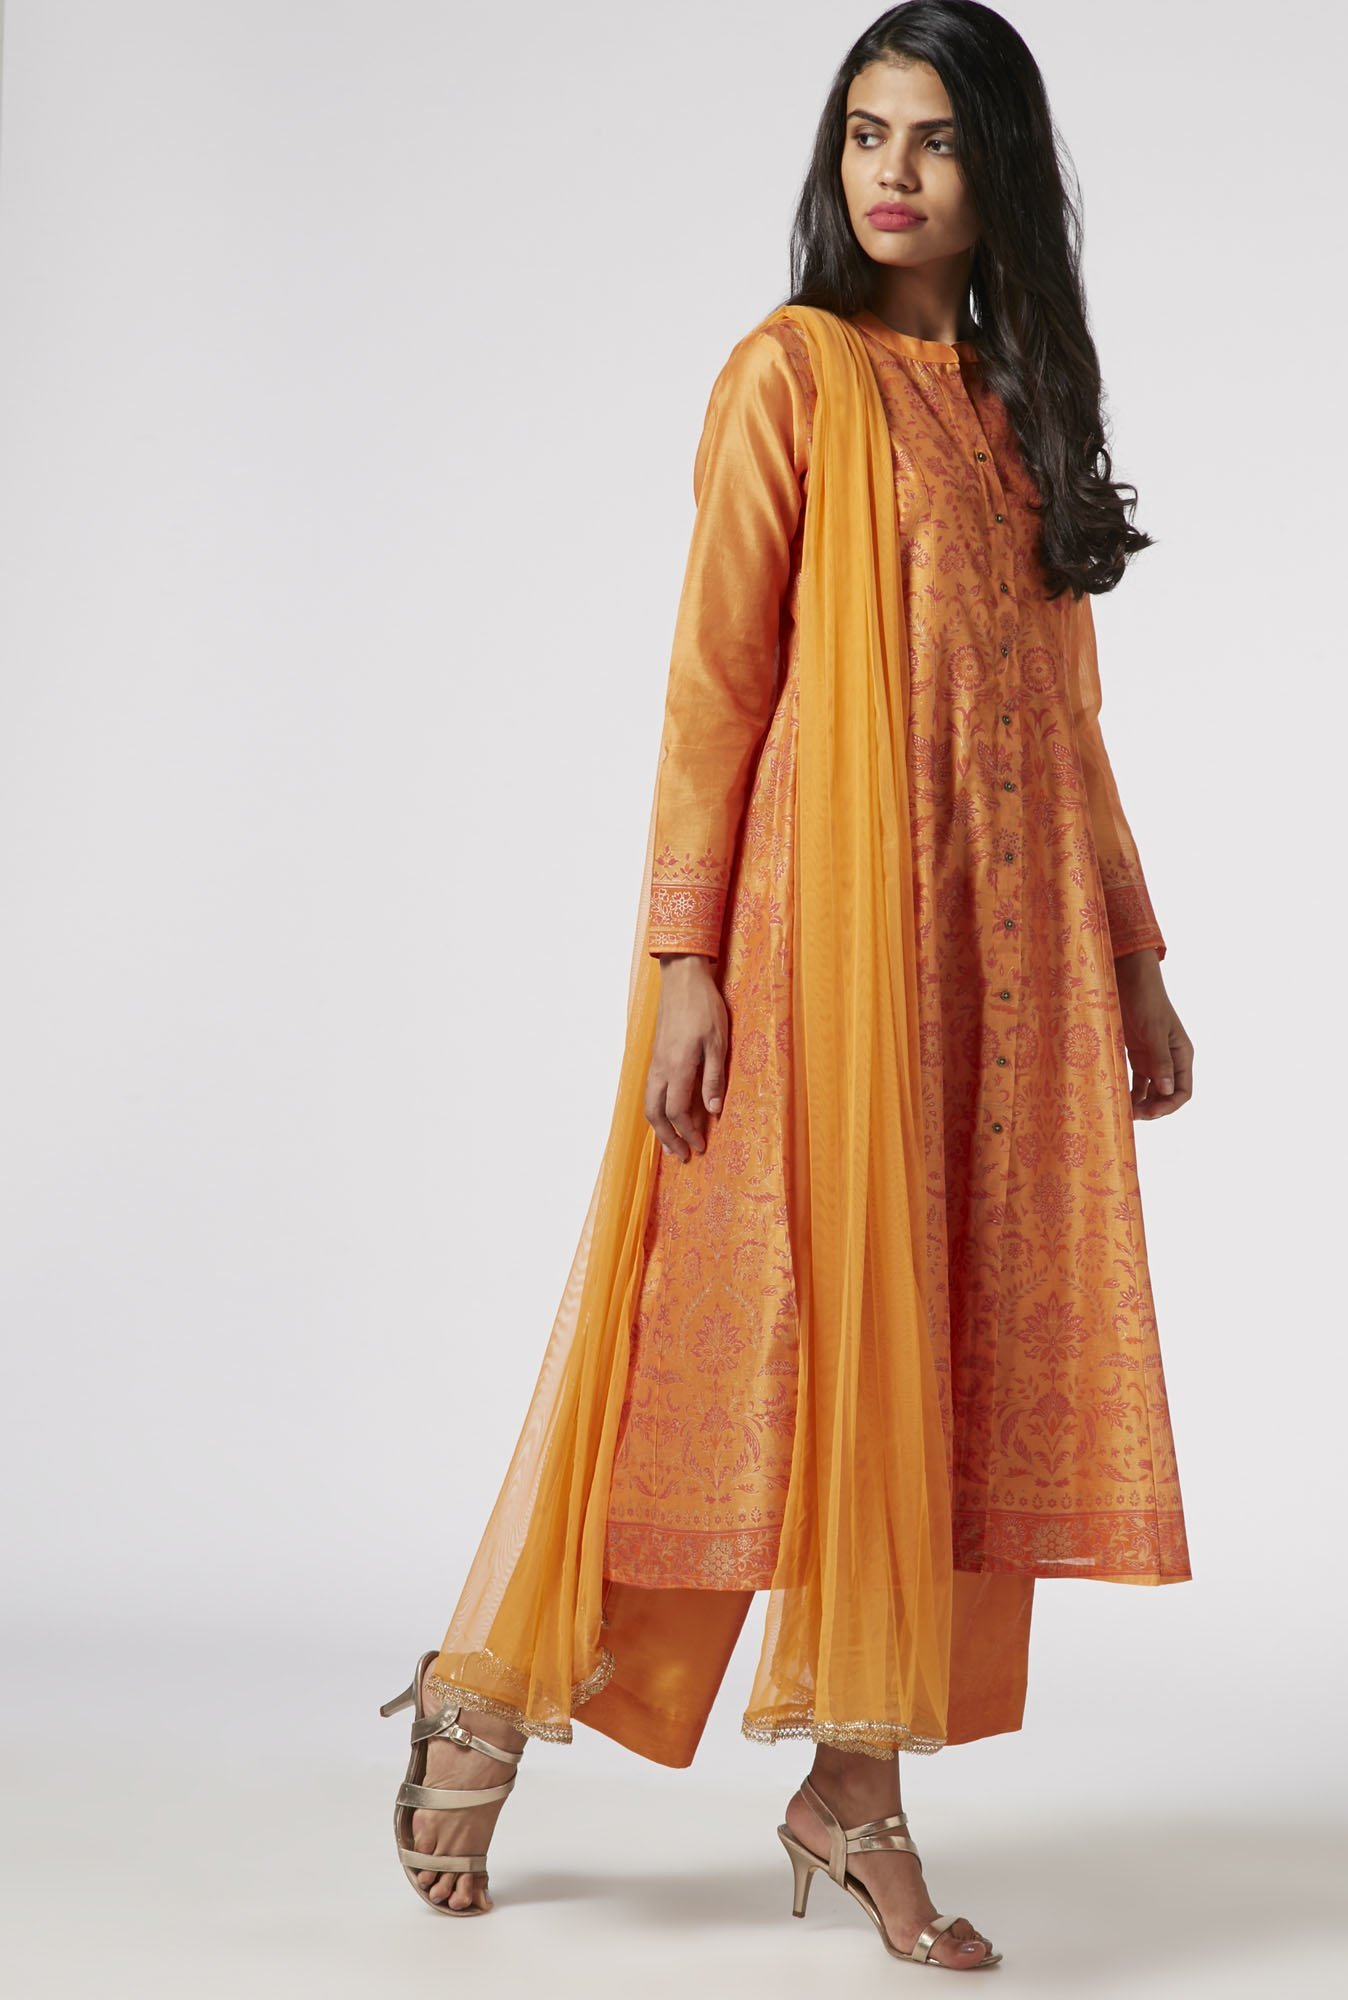 Vark by Westside Orange Ethnic Set